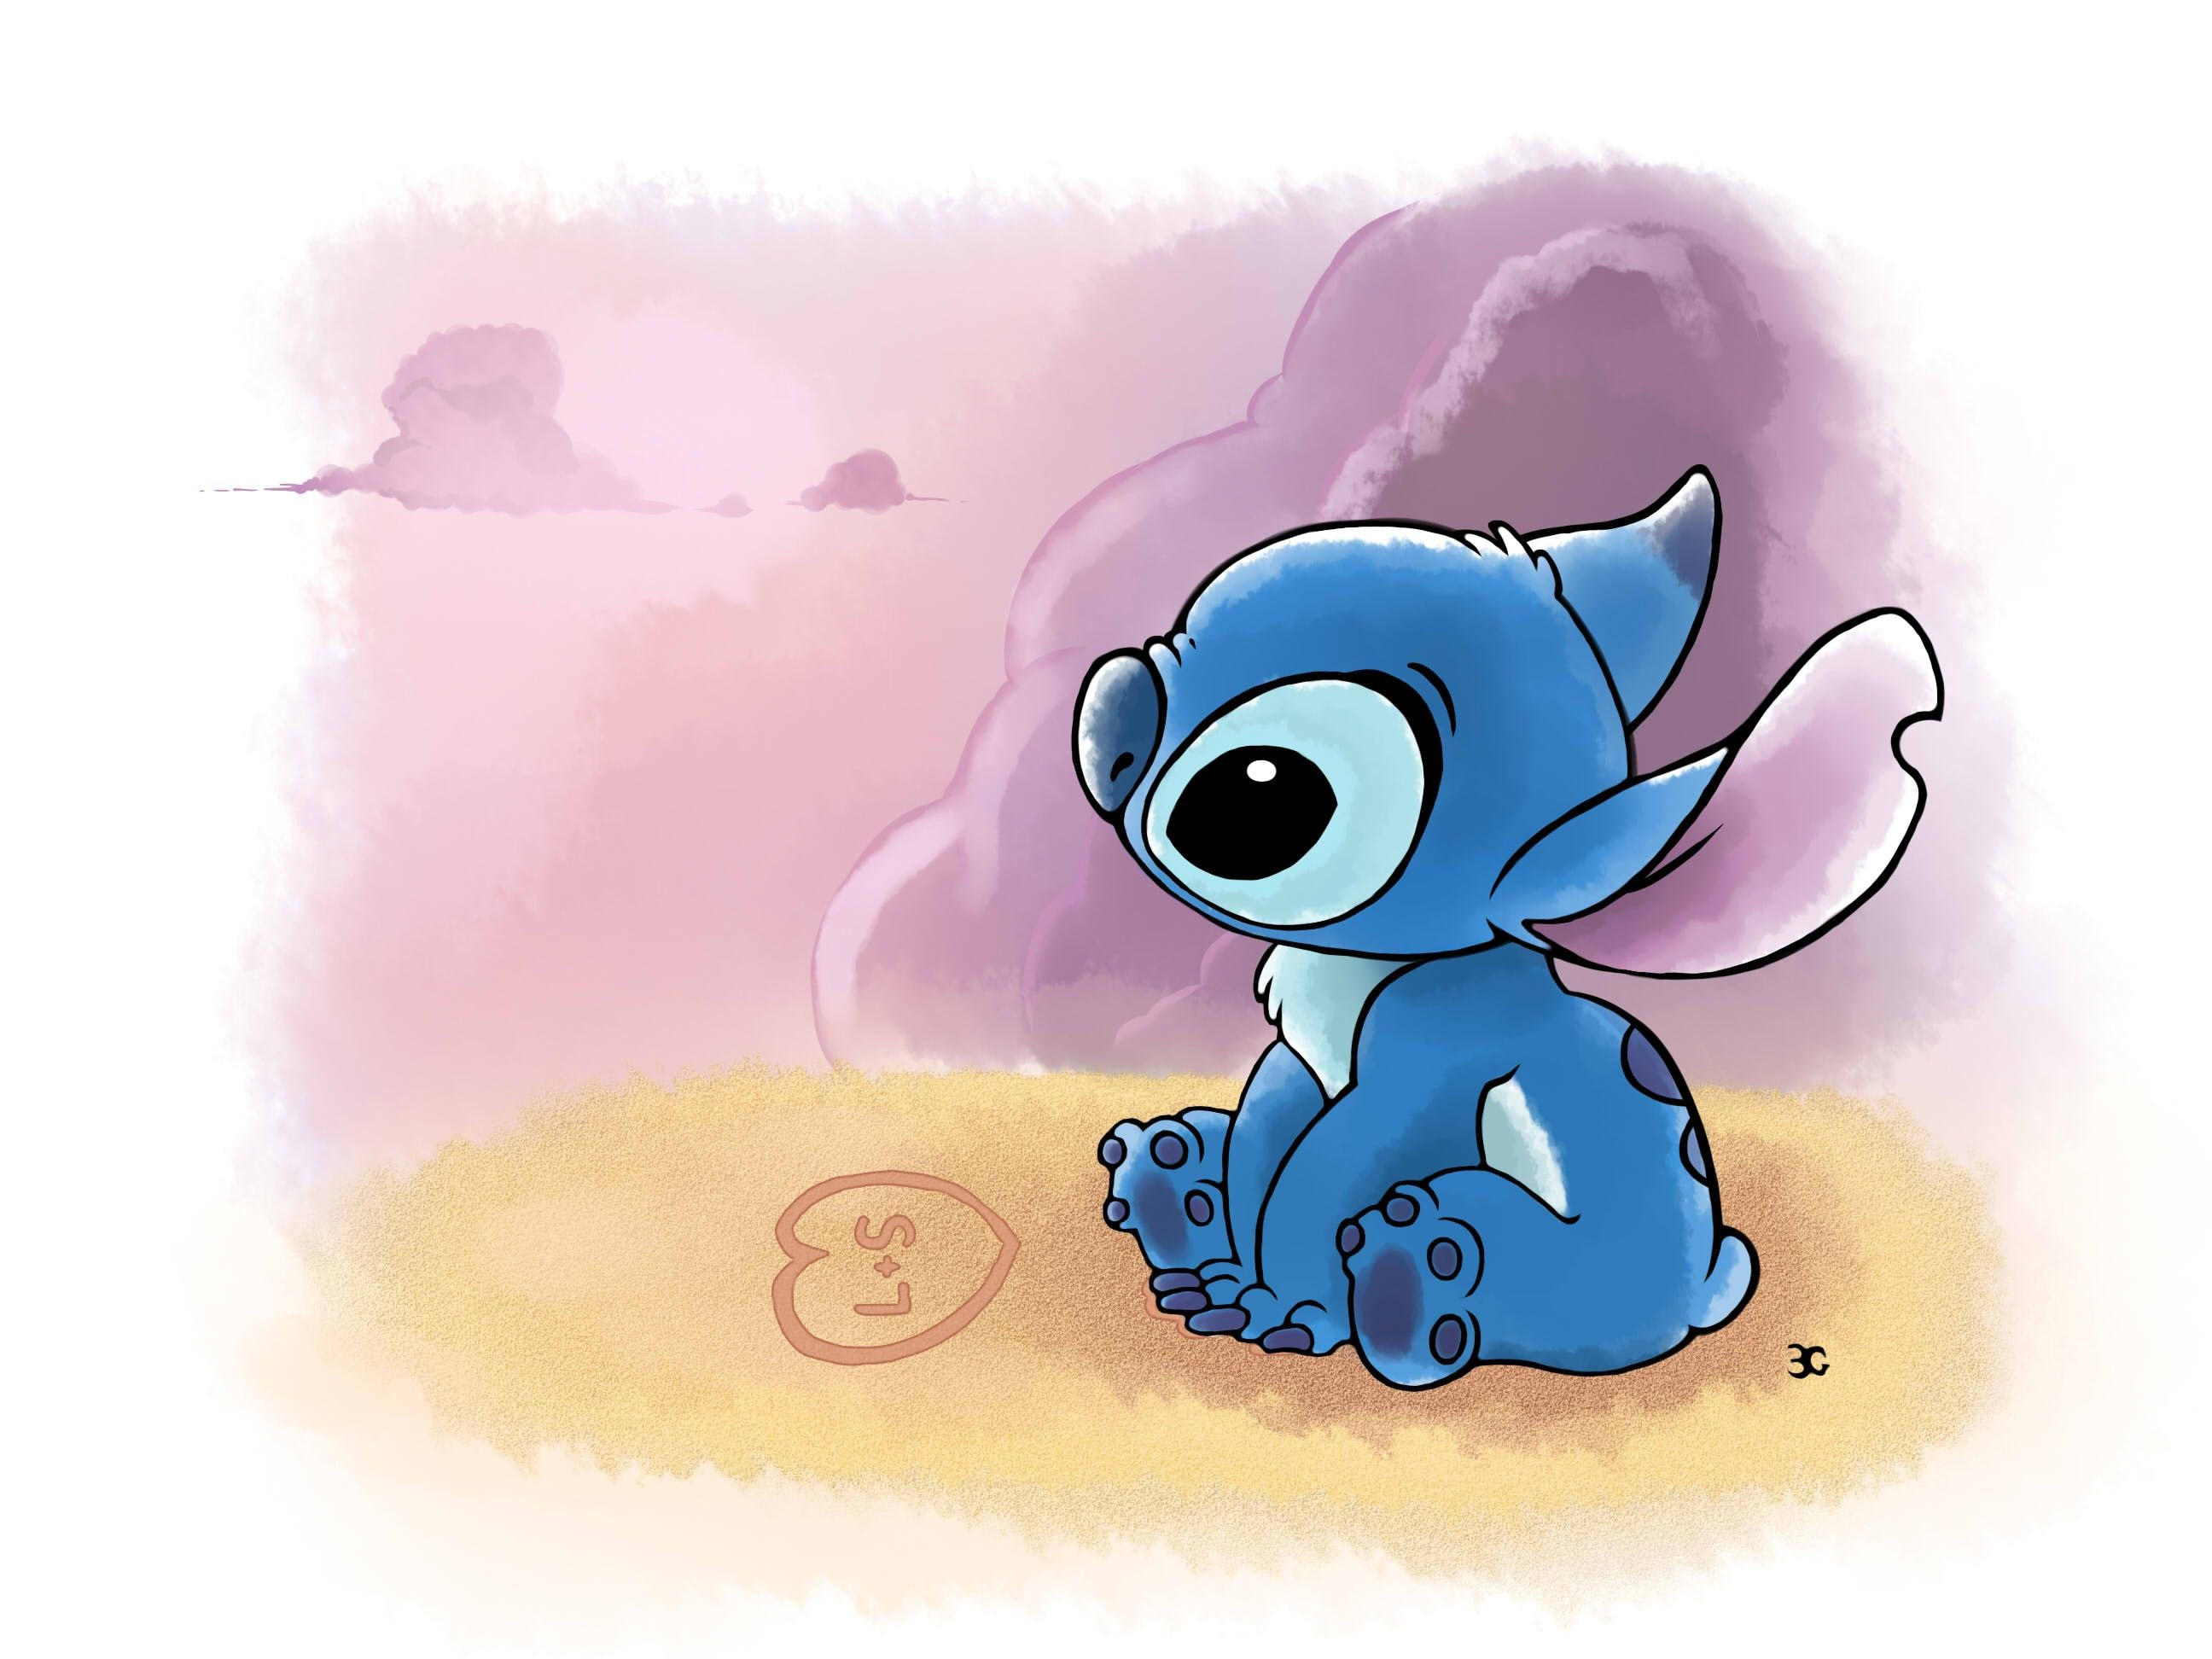 Stitch Wallpaper 183 Download Free Cool Wallpapers For Mobile Wallpaper Download Lilo And Stitc Stitch Drawing Character Wallpaper Disney Characters Wallpaper